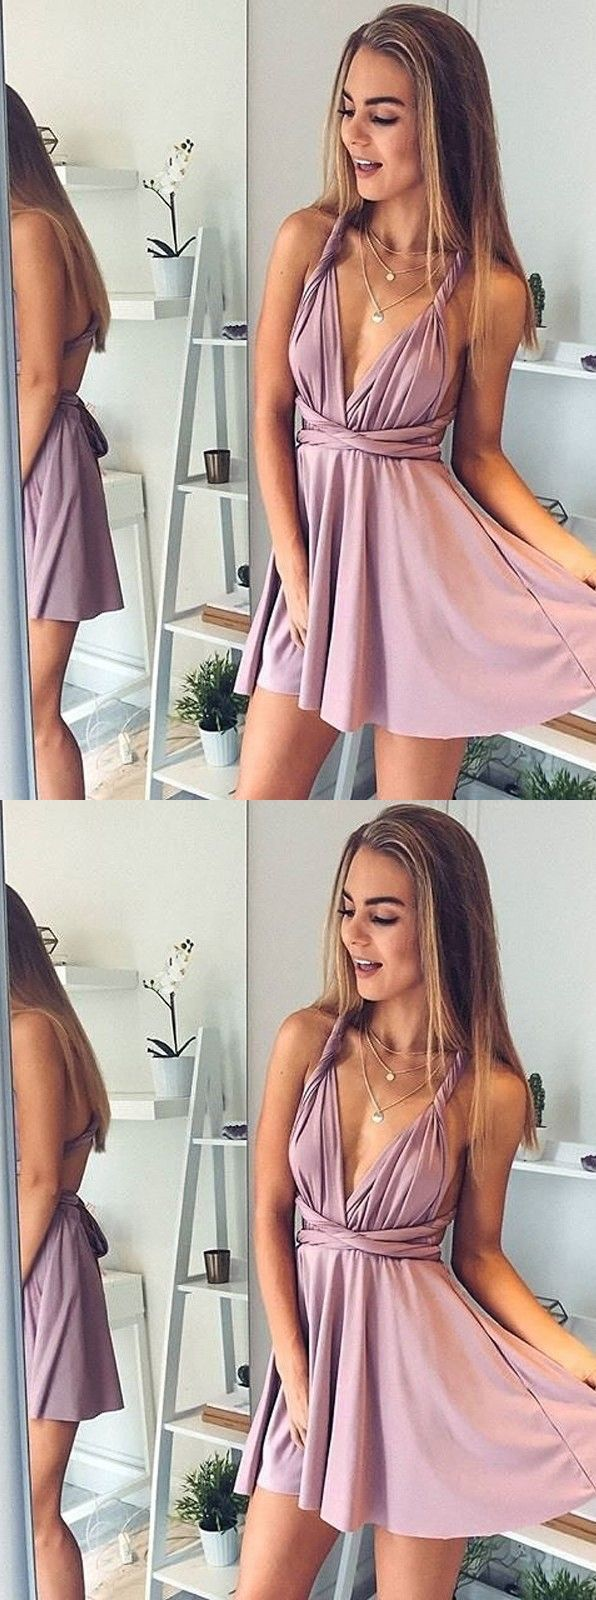 short homecoming dresses,sexy homecoming dresses,simple homecoming dresses,open back homecoming dresses